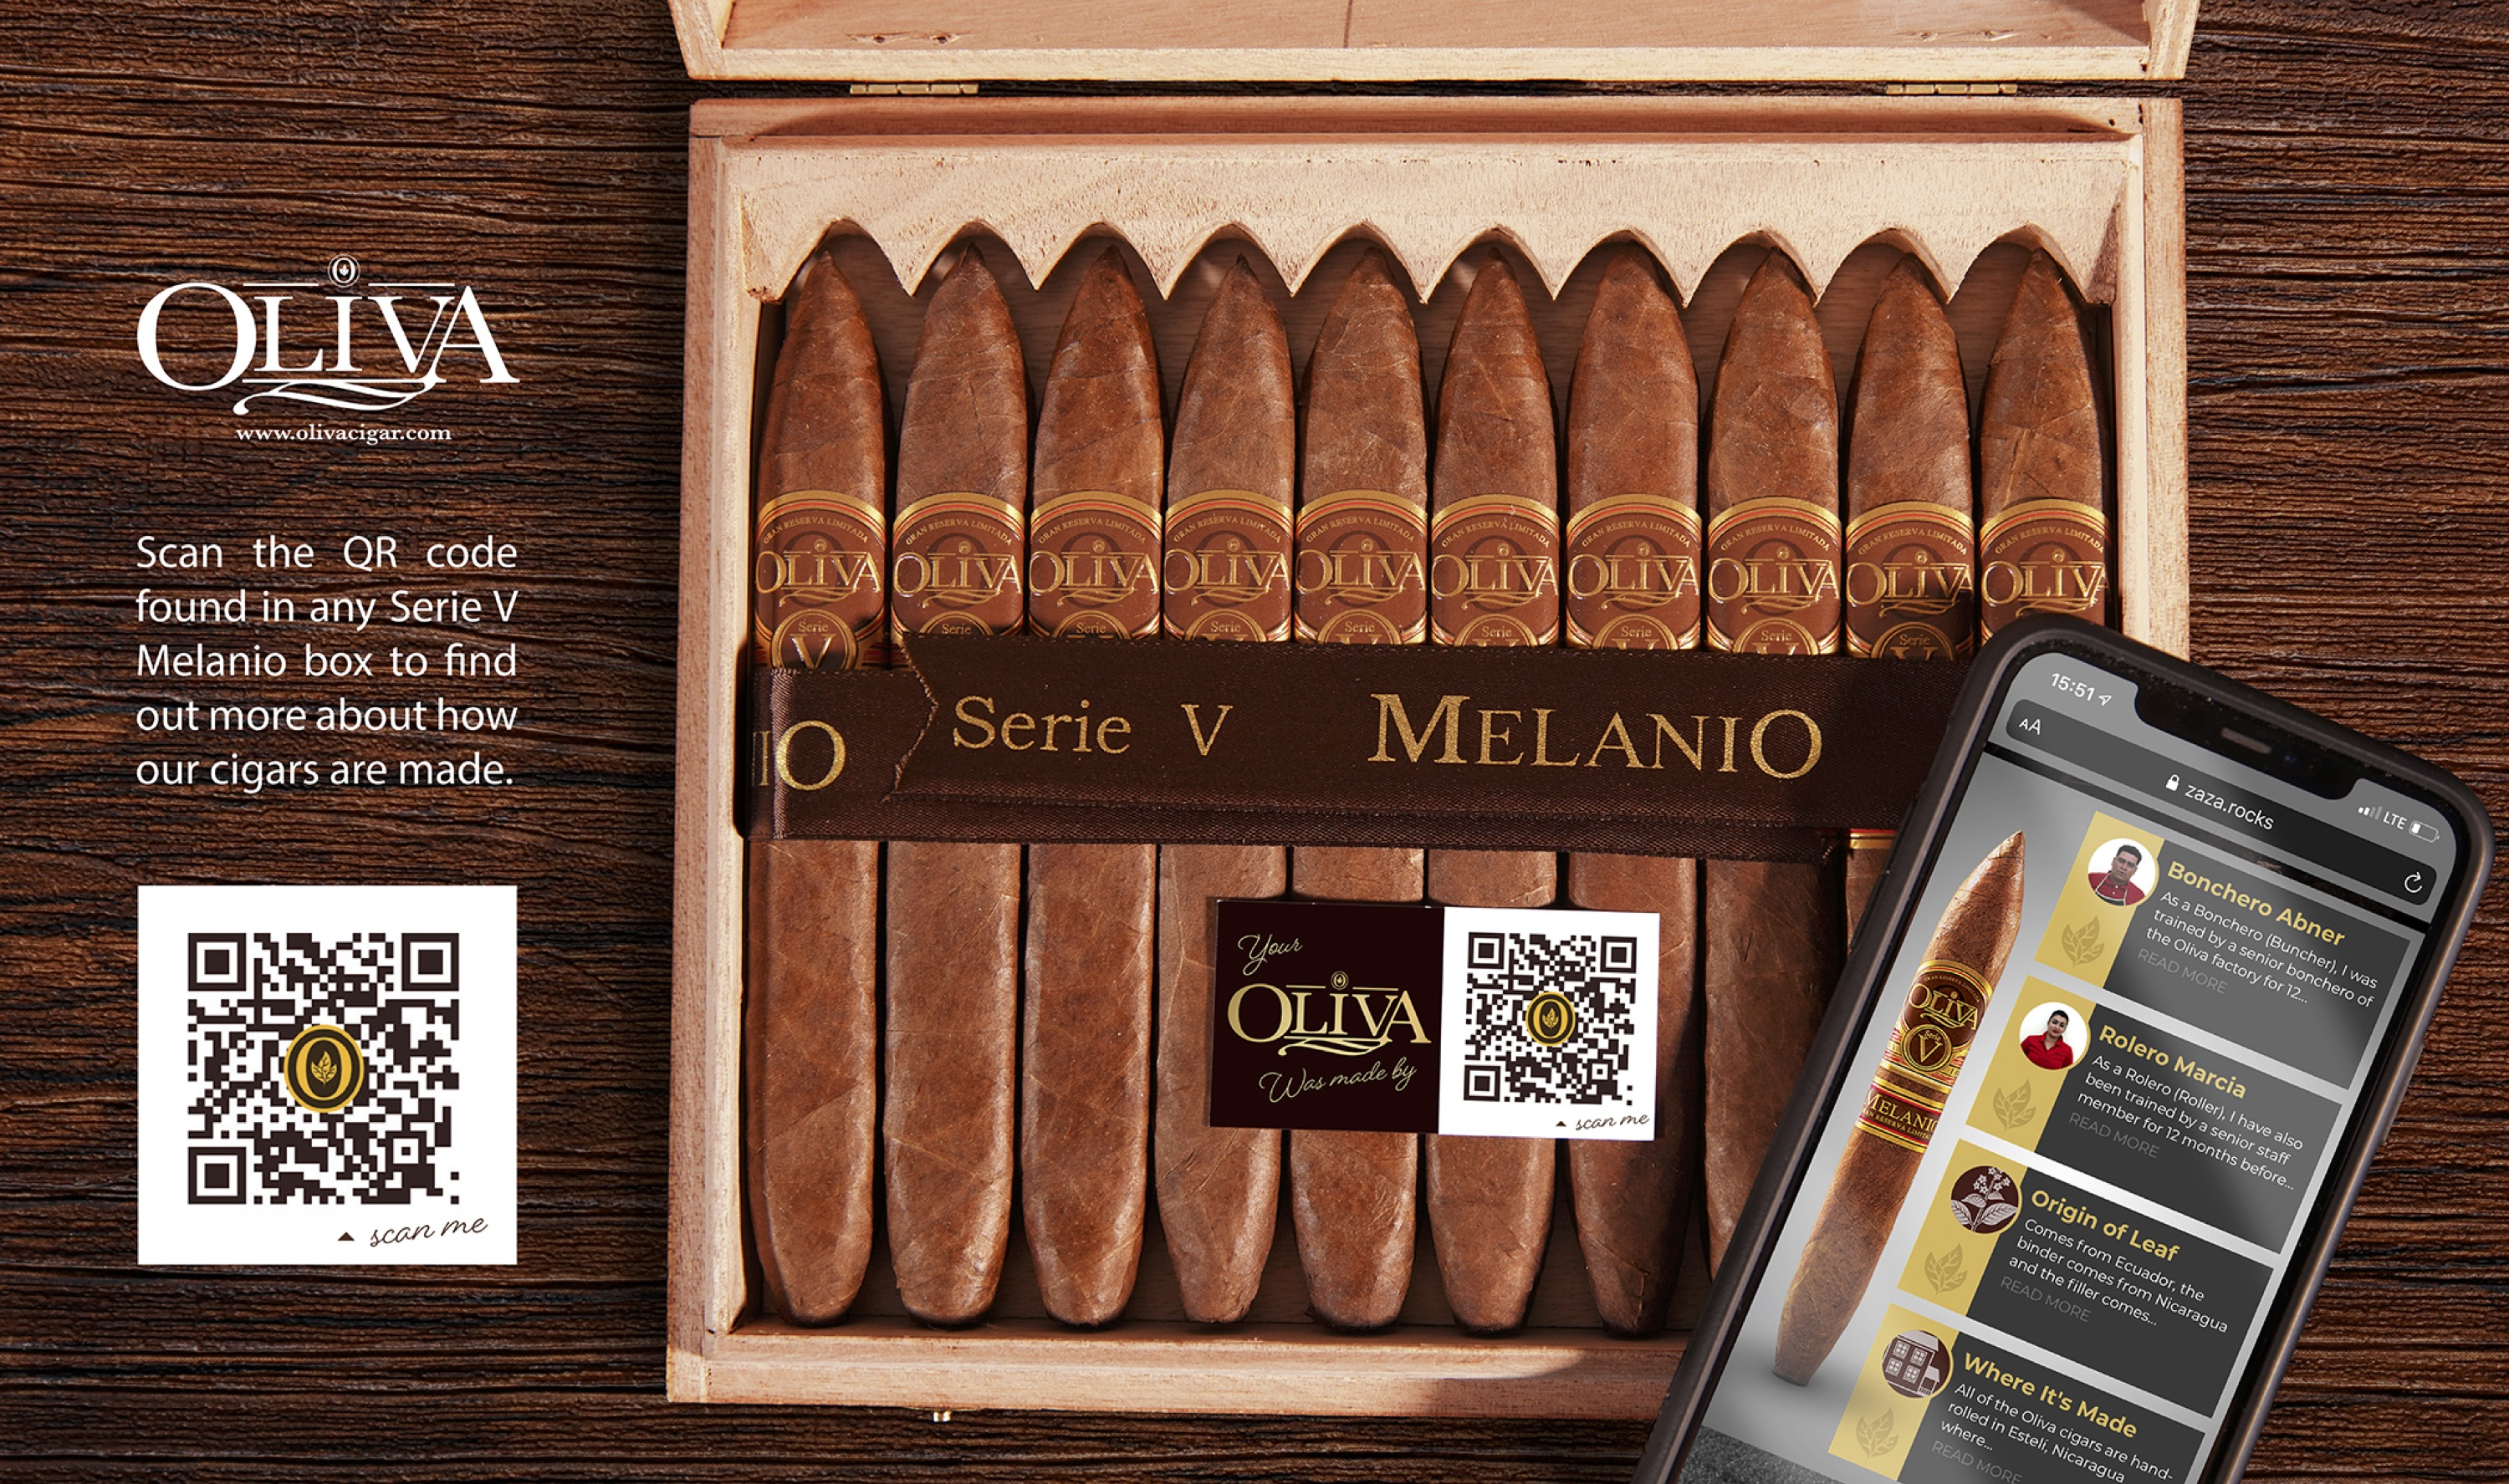 Product shot of an Oliva box of cigars with a twintag on.